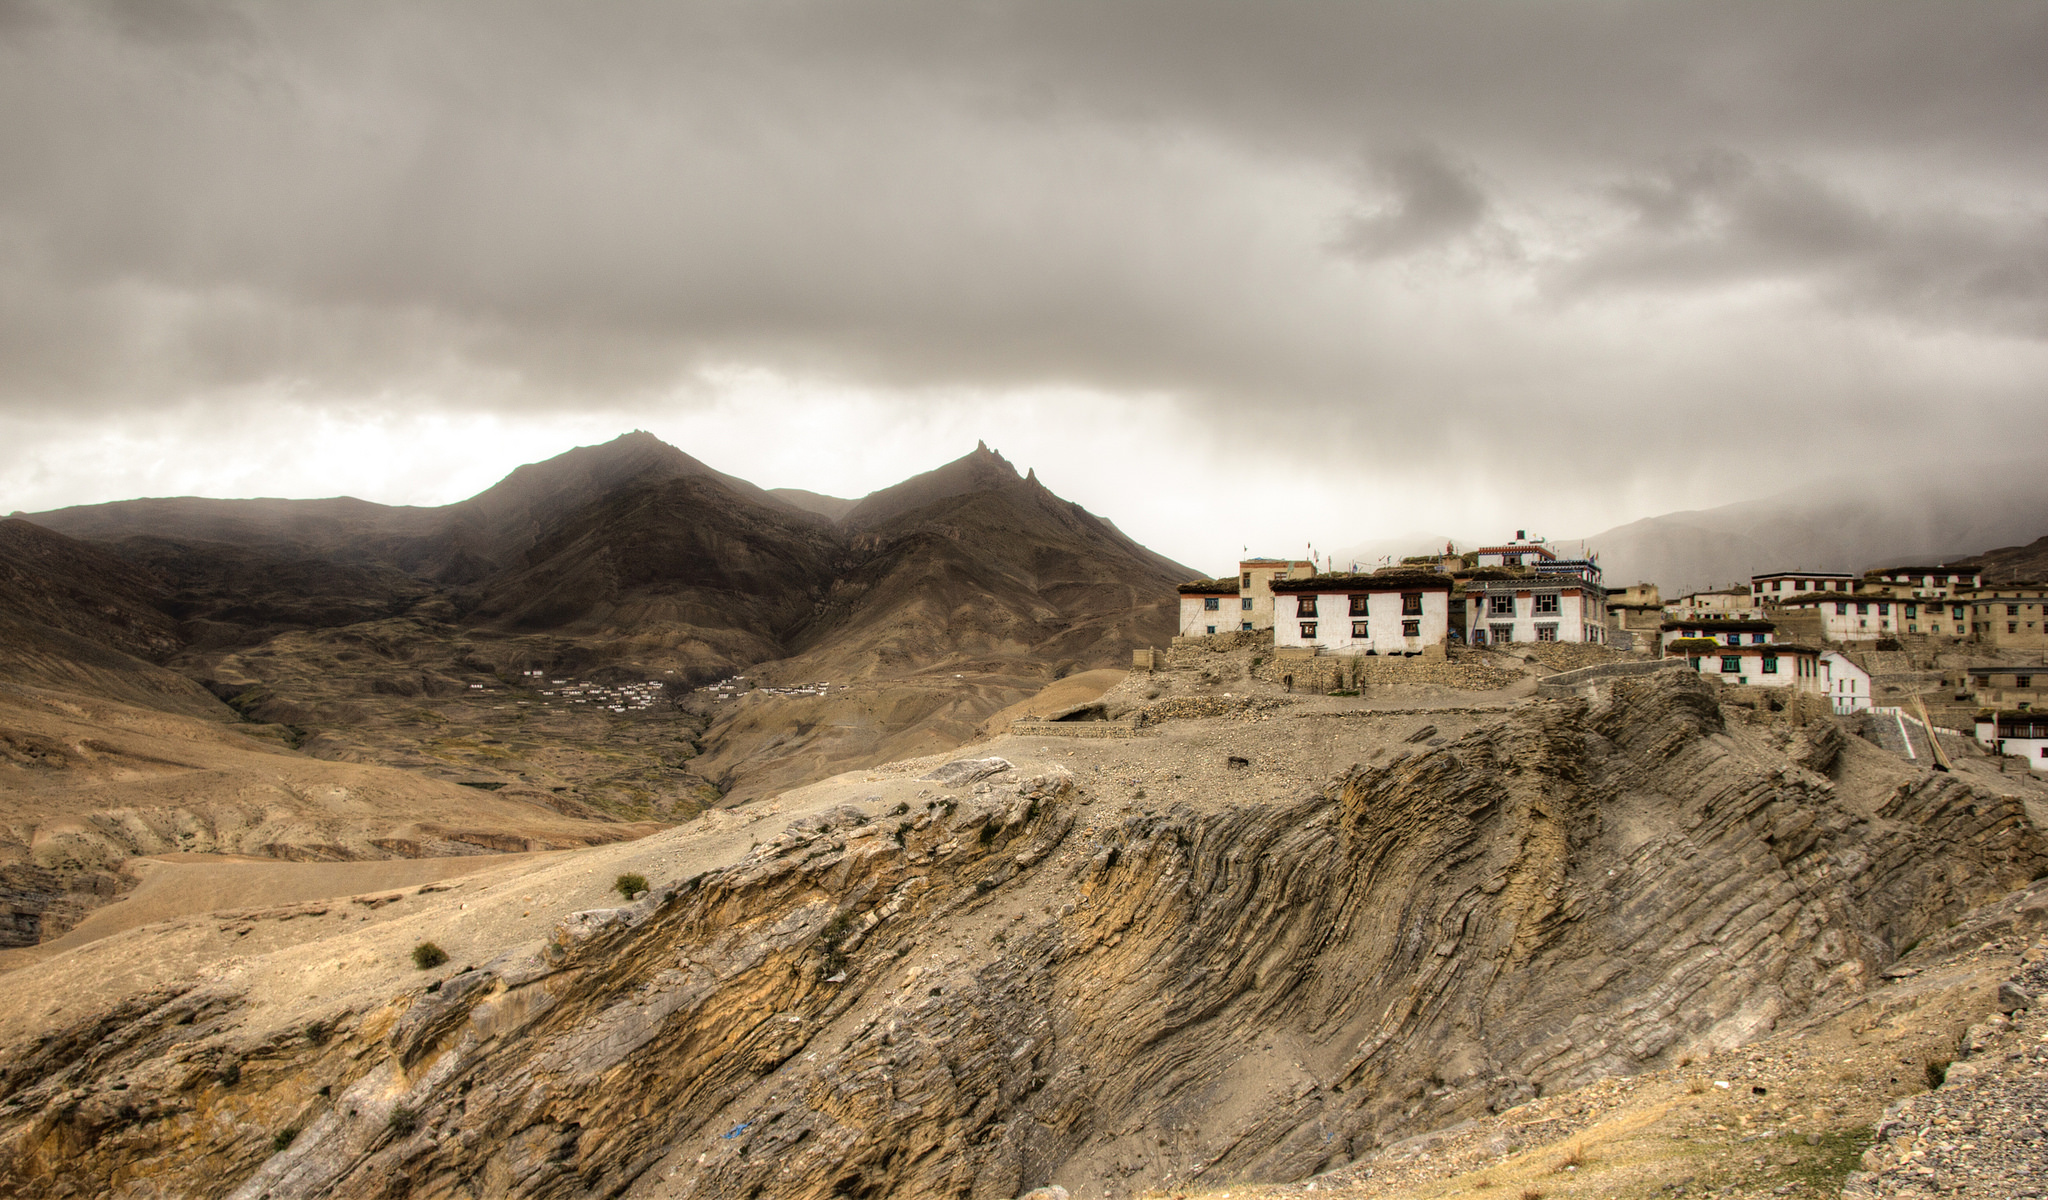 11 Rural Towns and Villages to Visit to Experience Real India